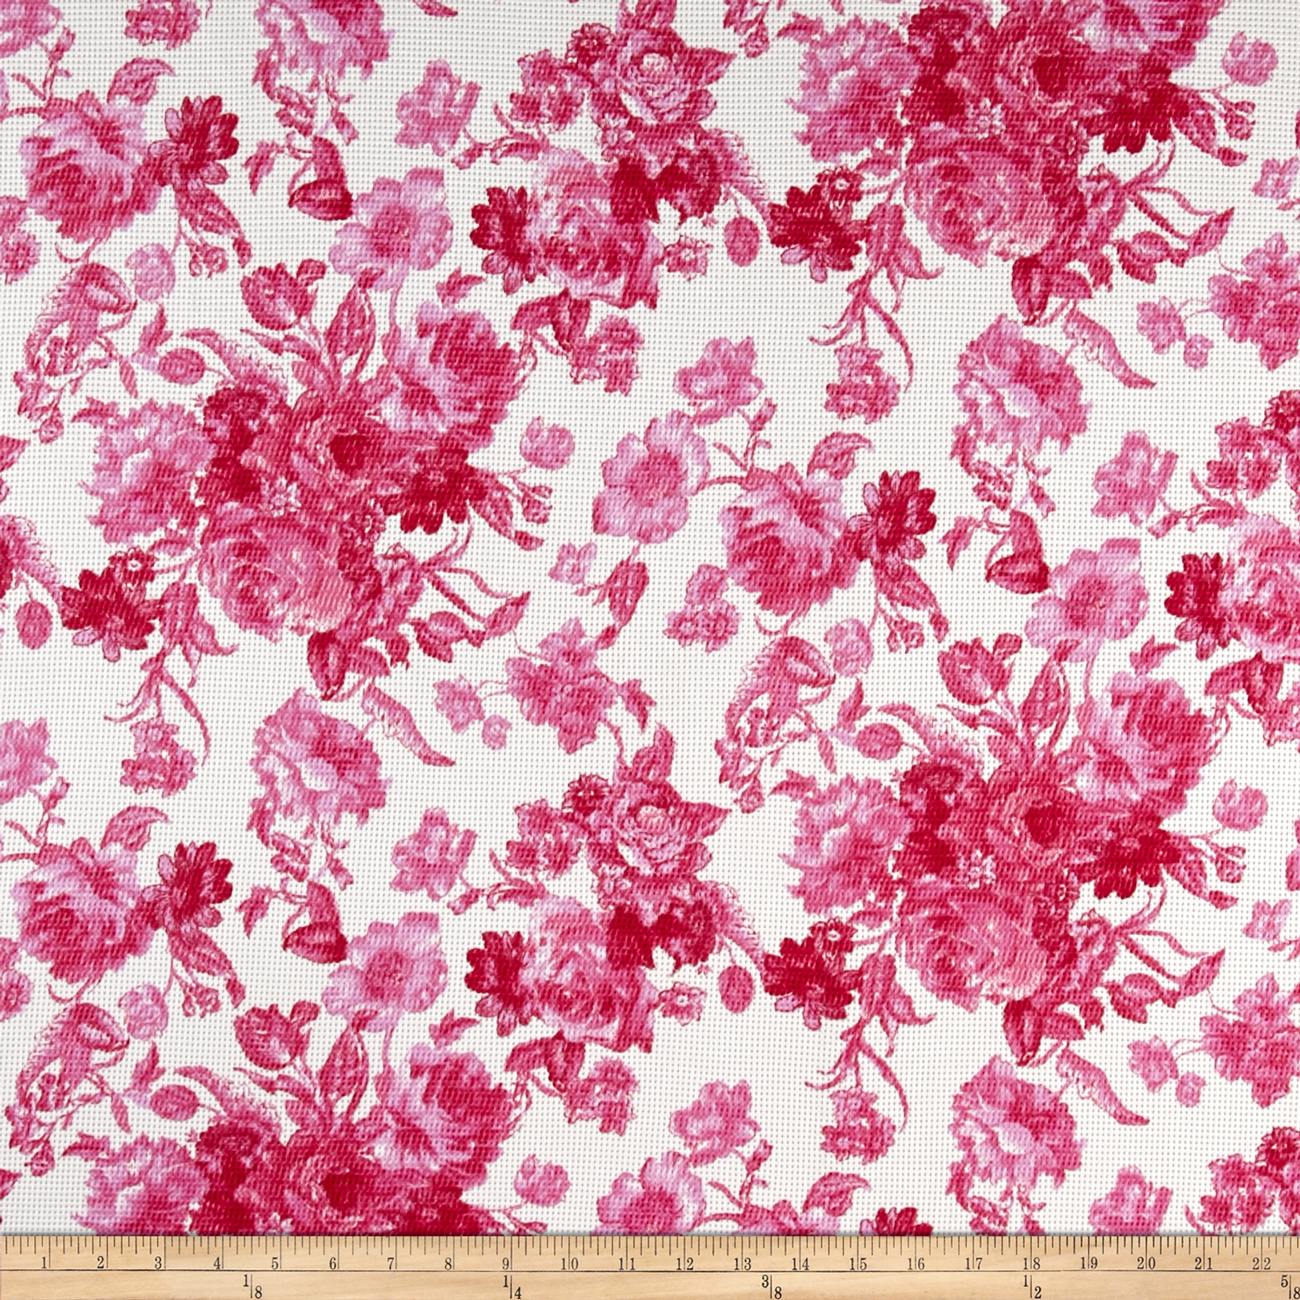 Romantic Floral Pique Knit Print Ivory/Fruitpunch Fabric by Neiman in USA